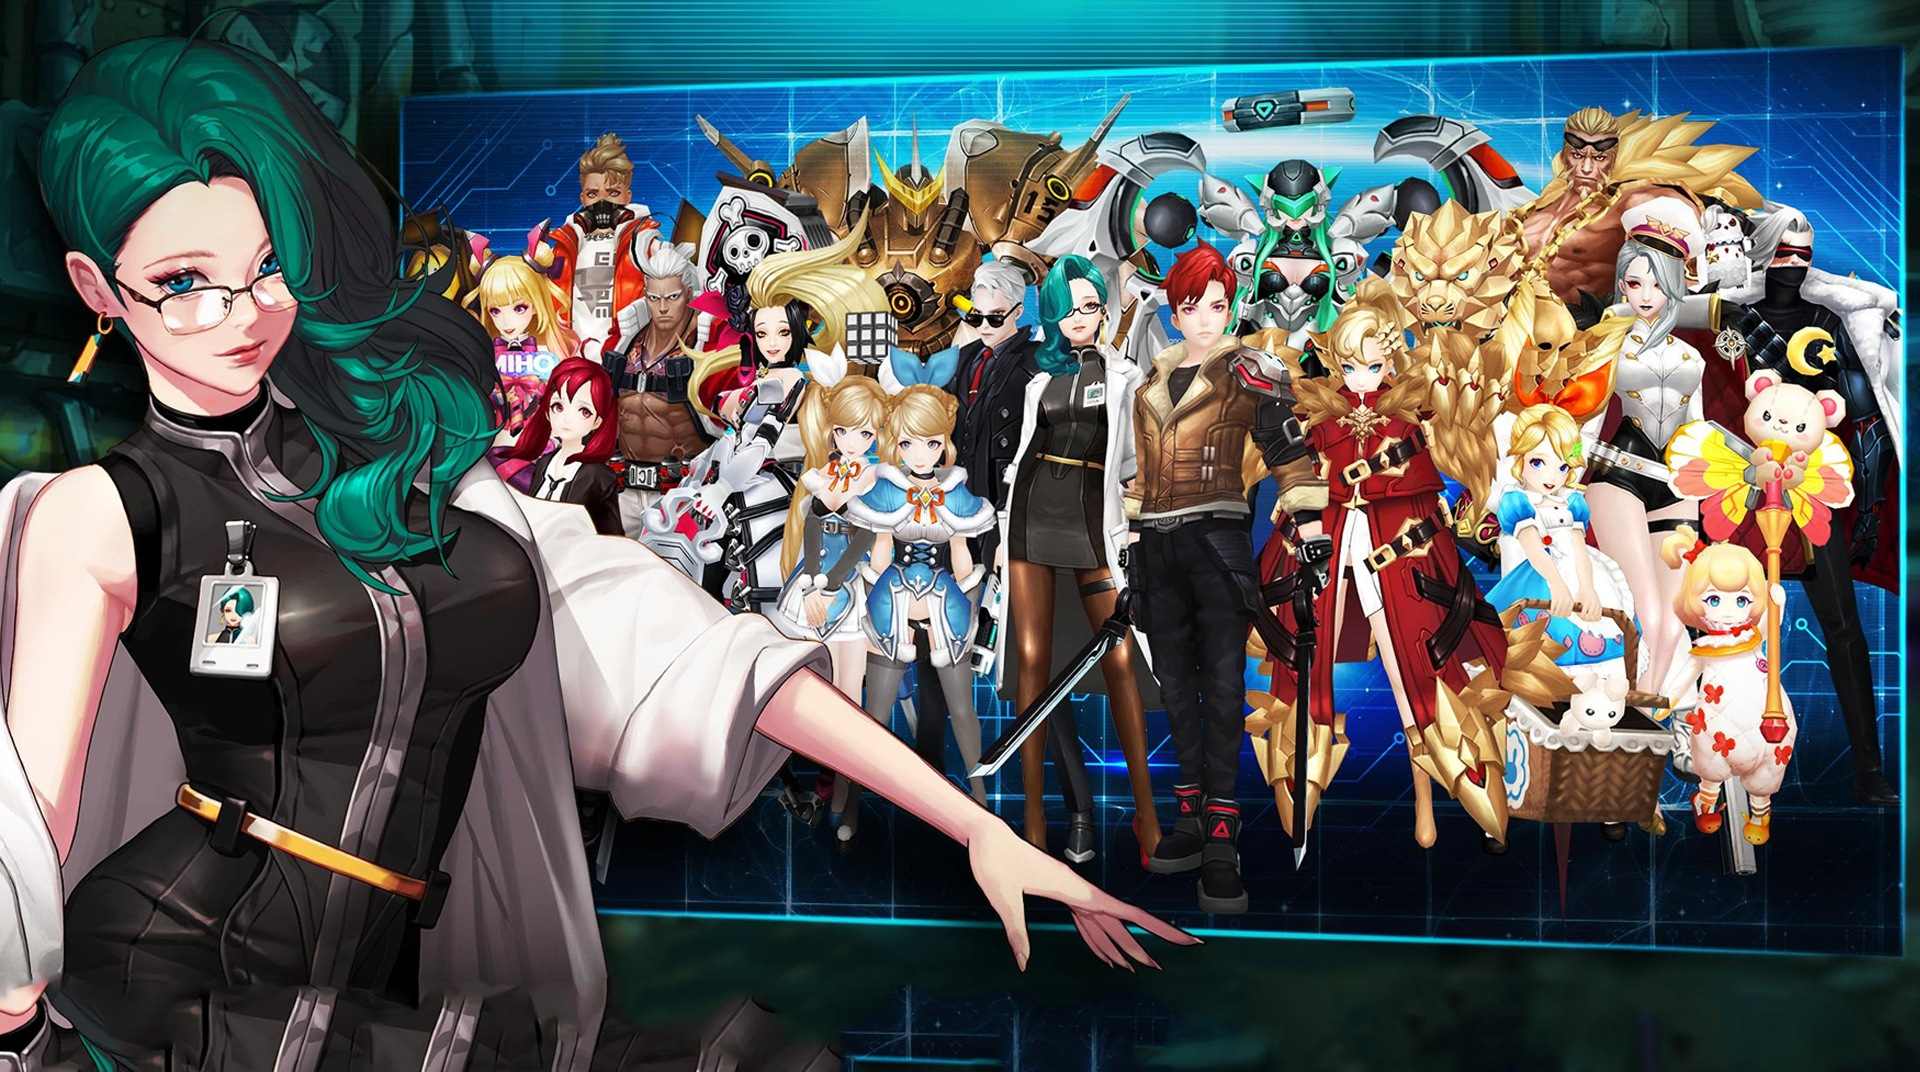 Download GATE SIX: CYBER PERSONA on PC with BlueStacks